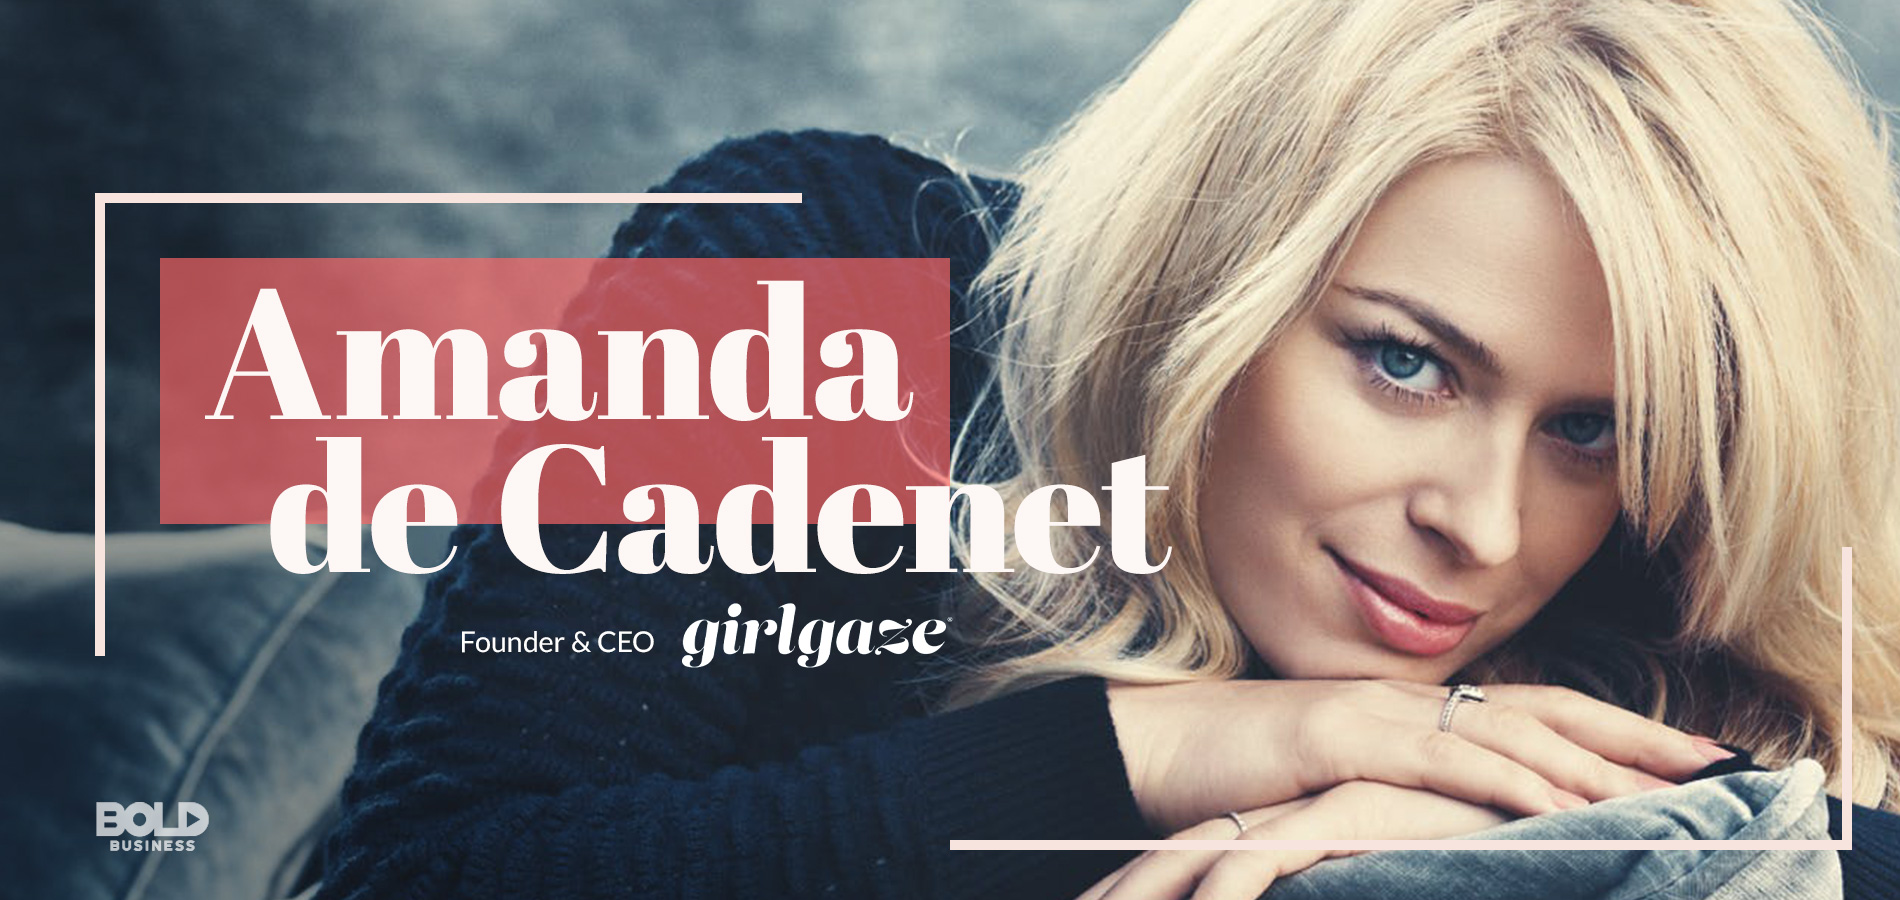 a photo of Amanda de Cadenet with her name and the company's name,